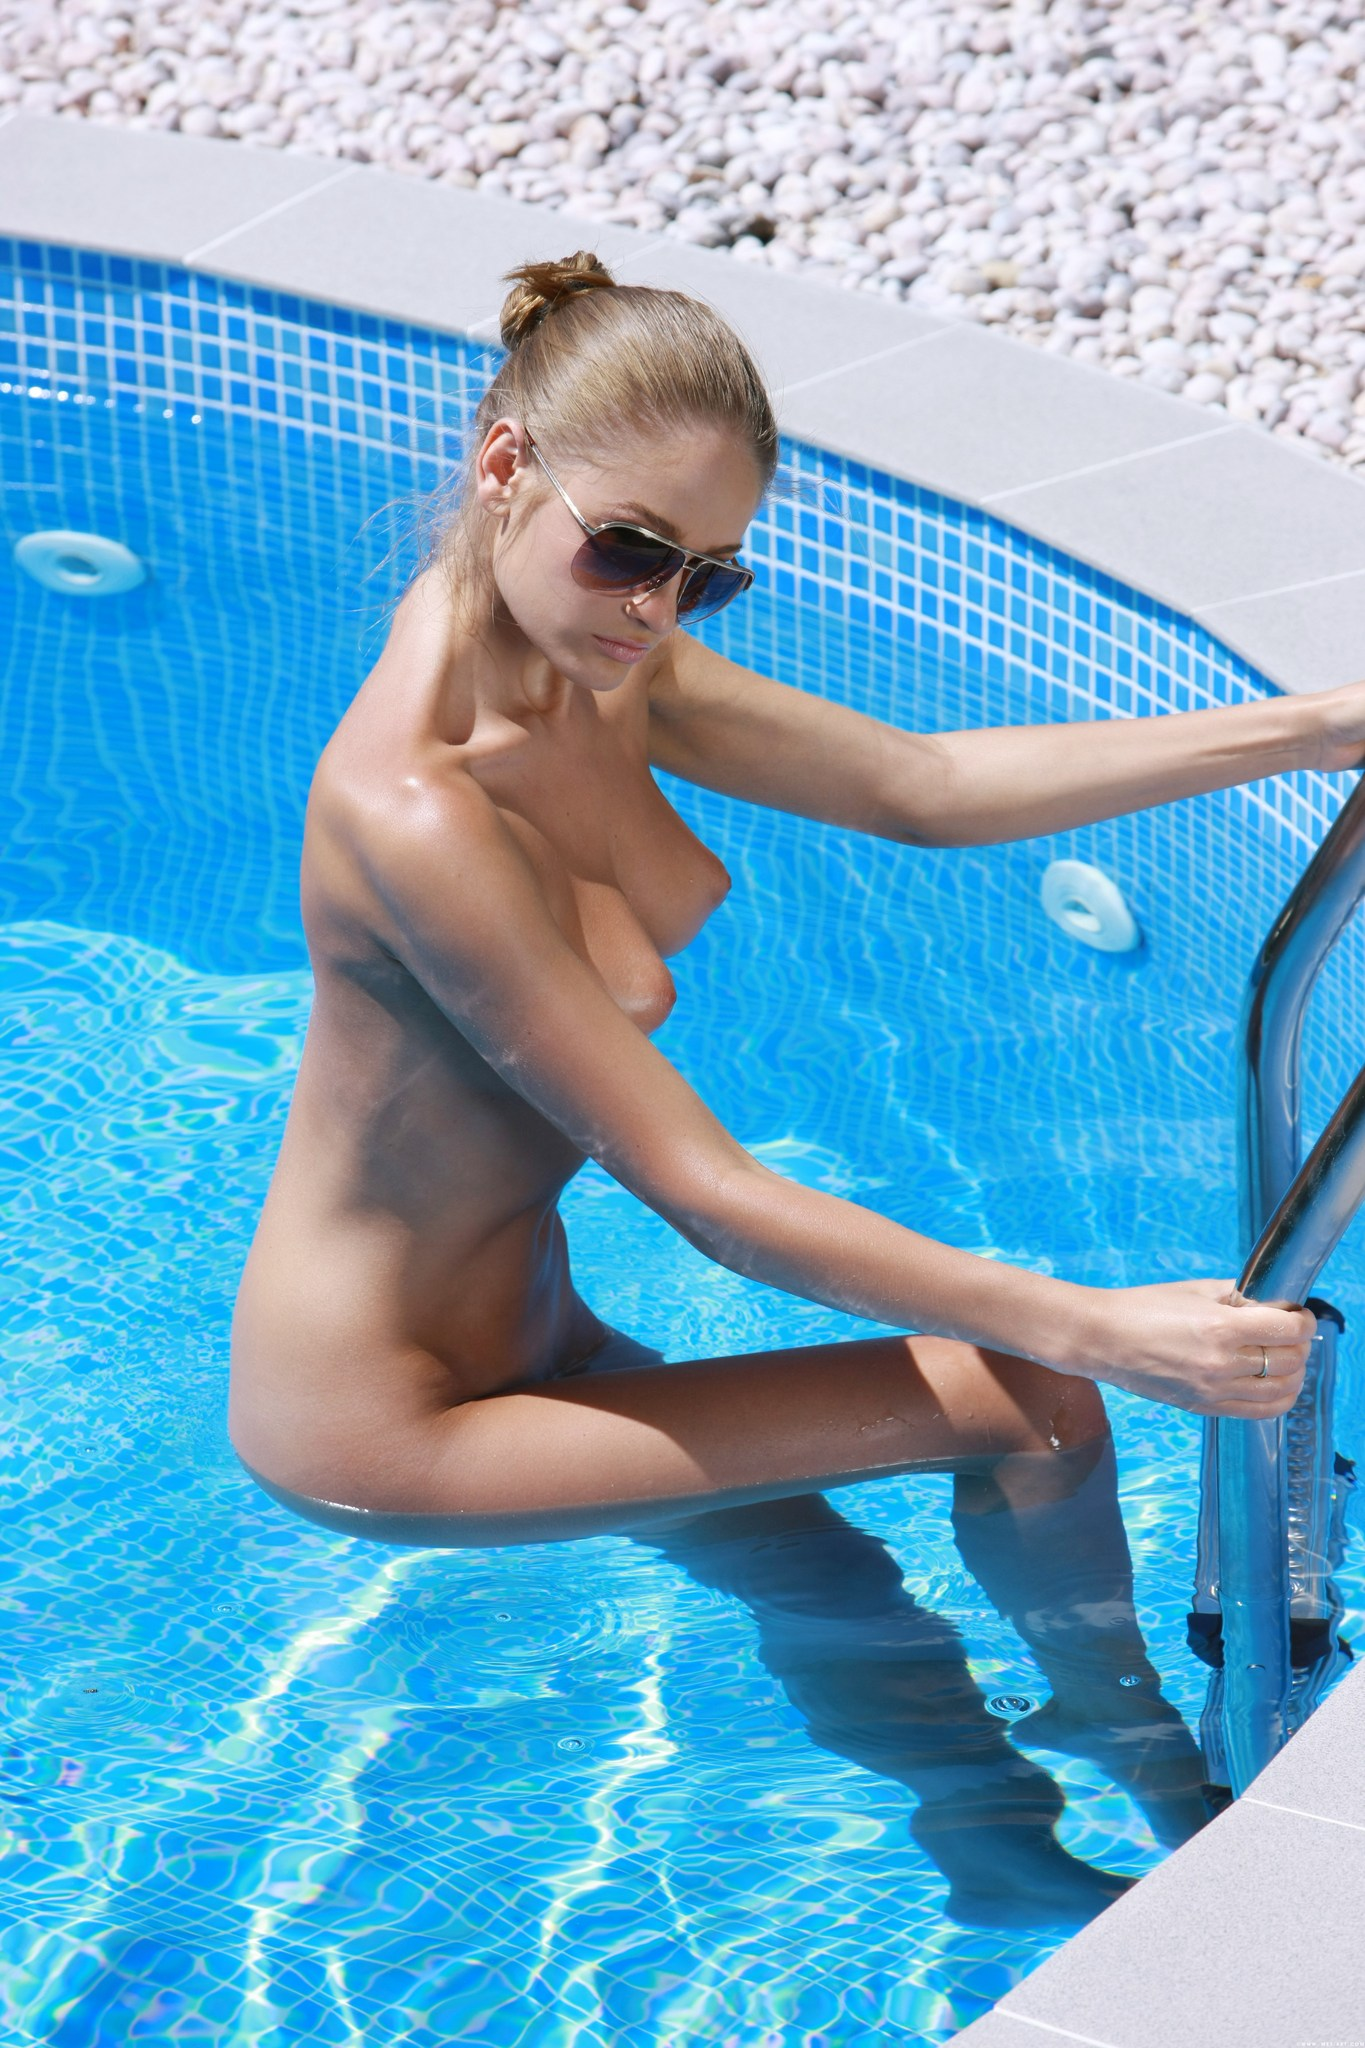 girls-nude-in-pool-wet-photo-mix-vol6-45